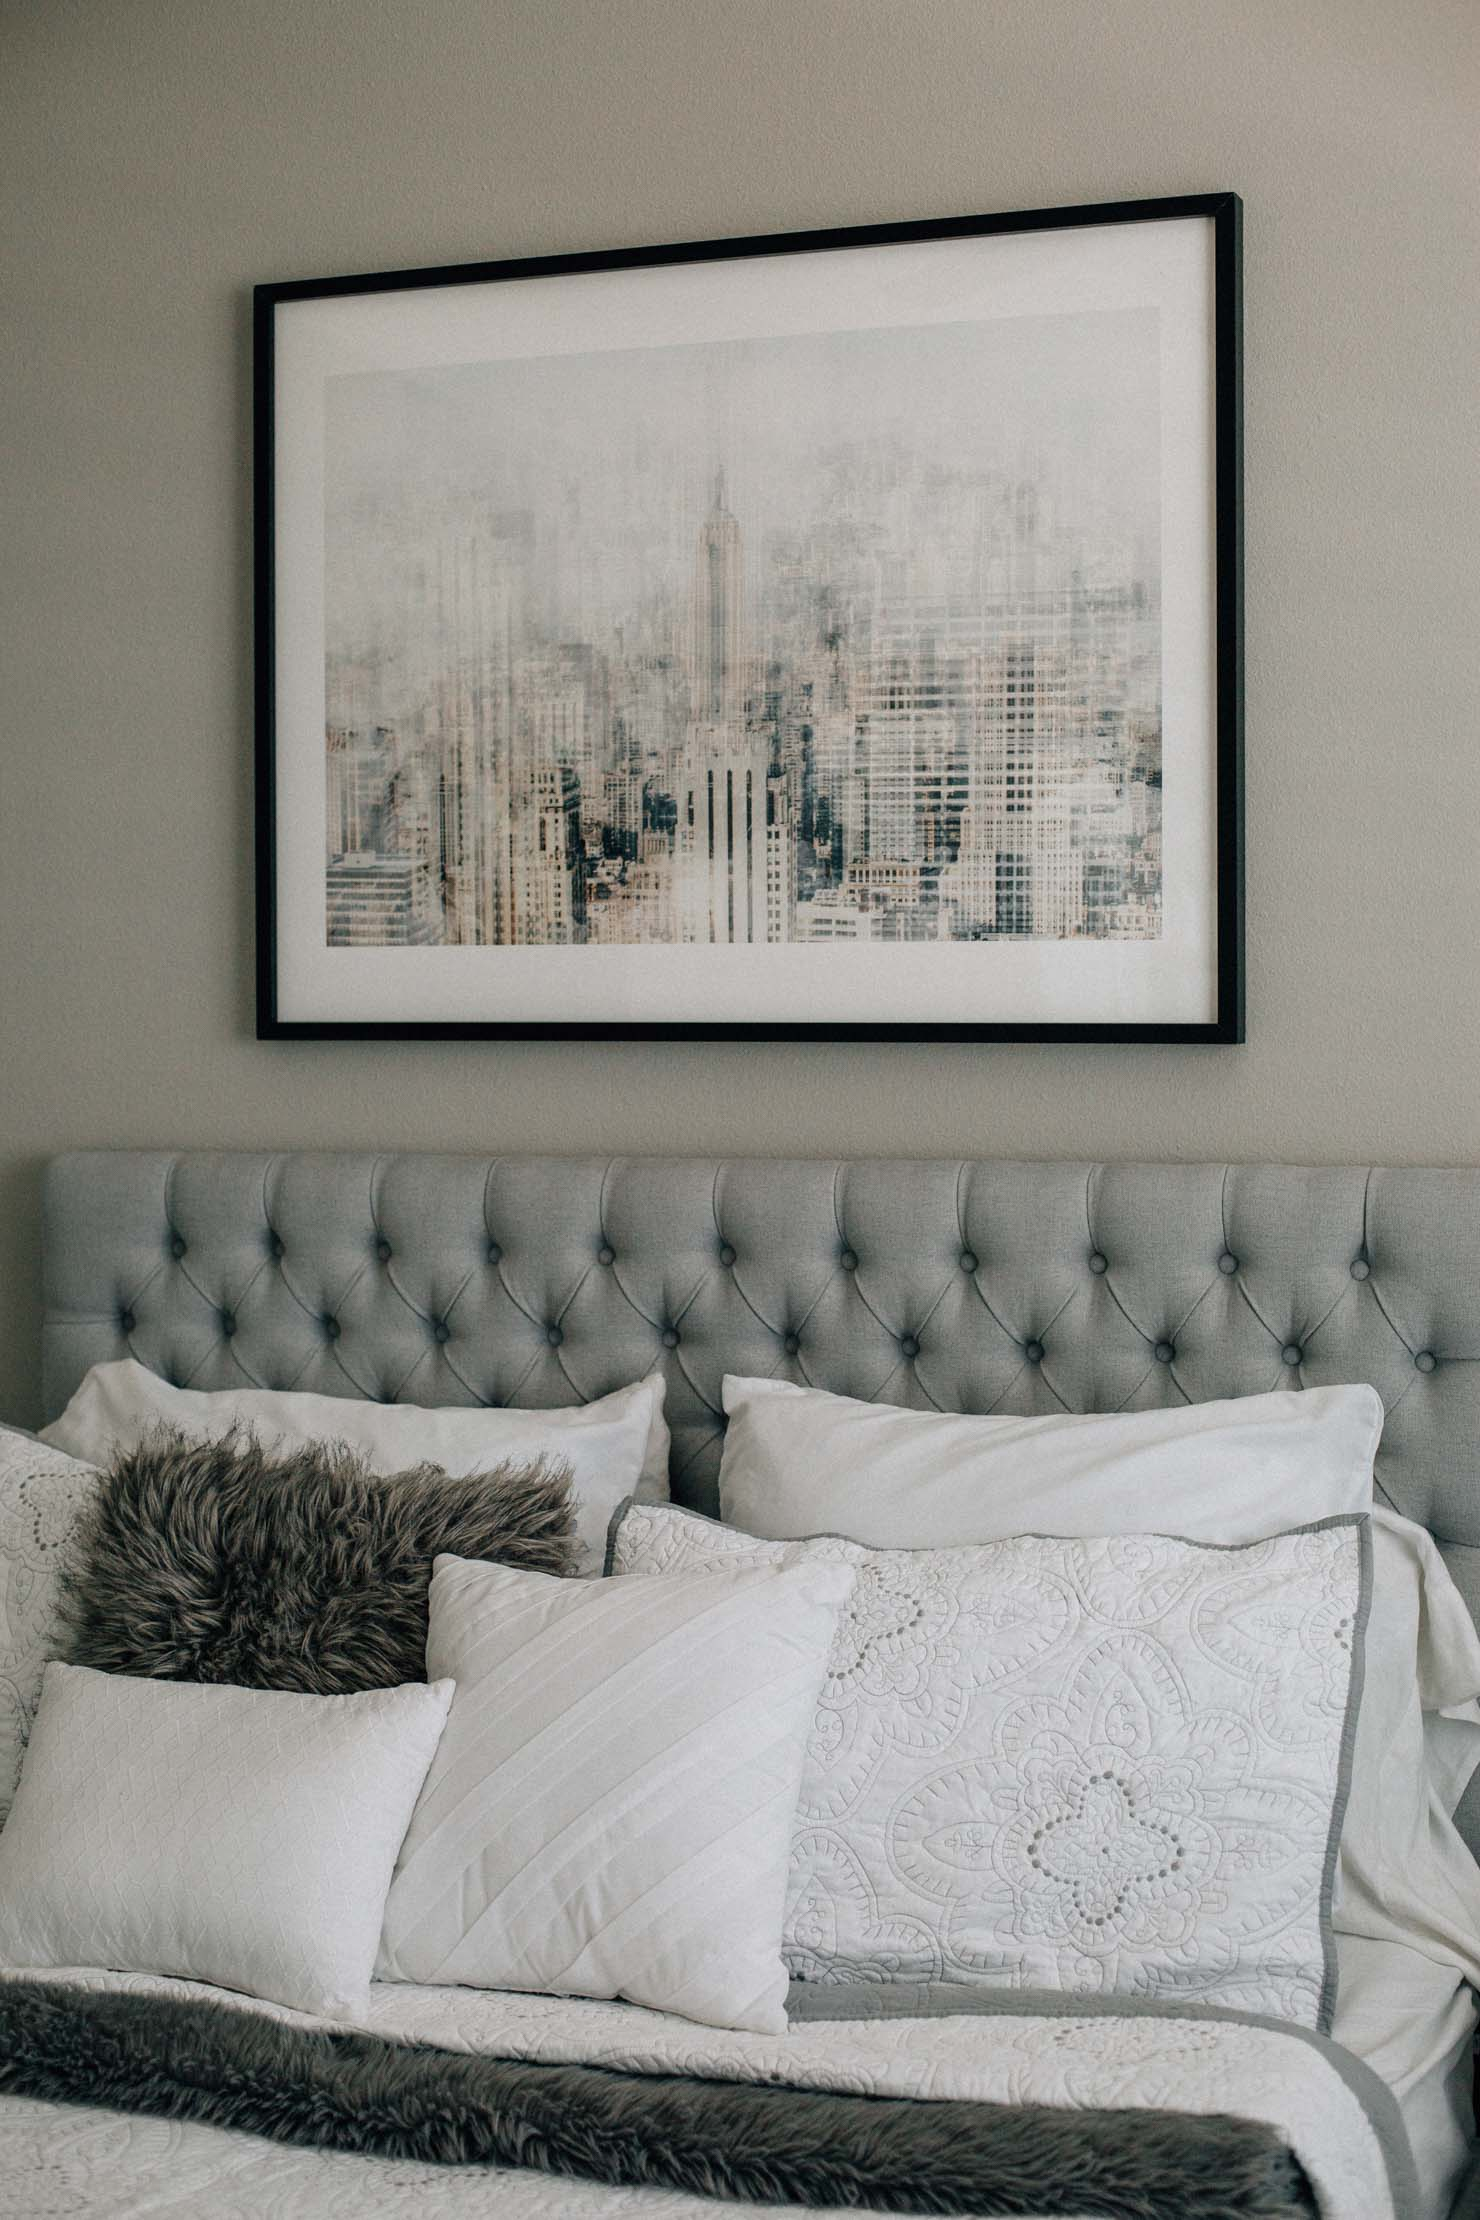 Lifestyle blogger Lilly Beltran of Daily Craving shares her master bedroom reveal